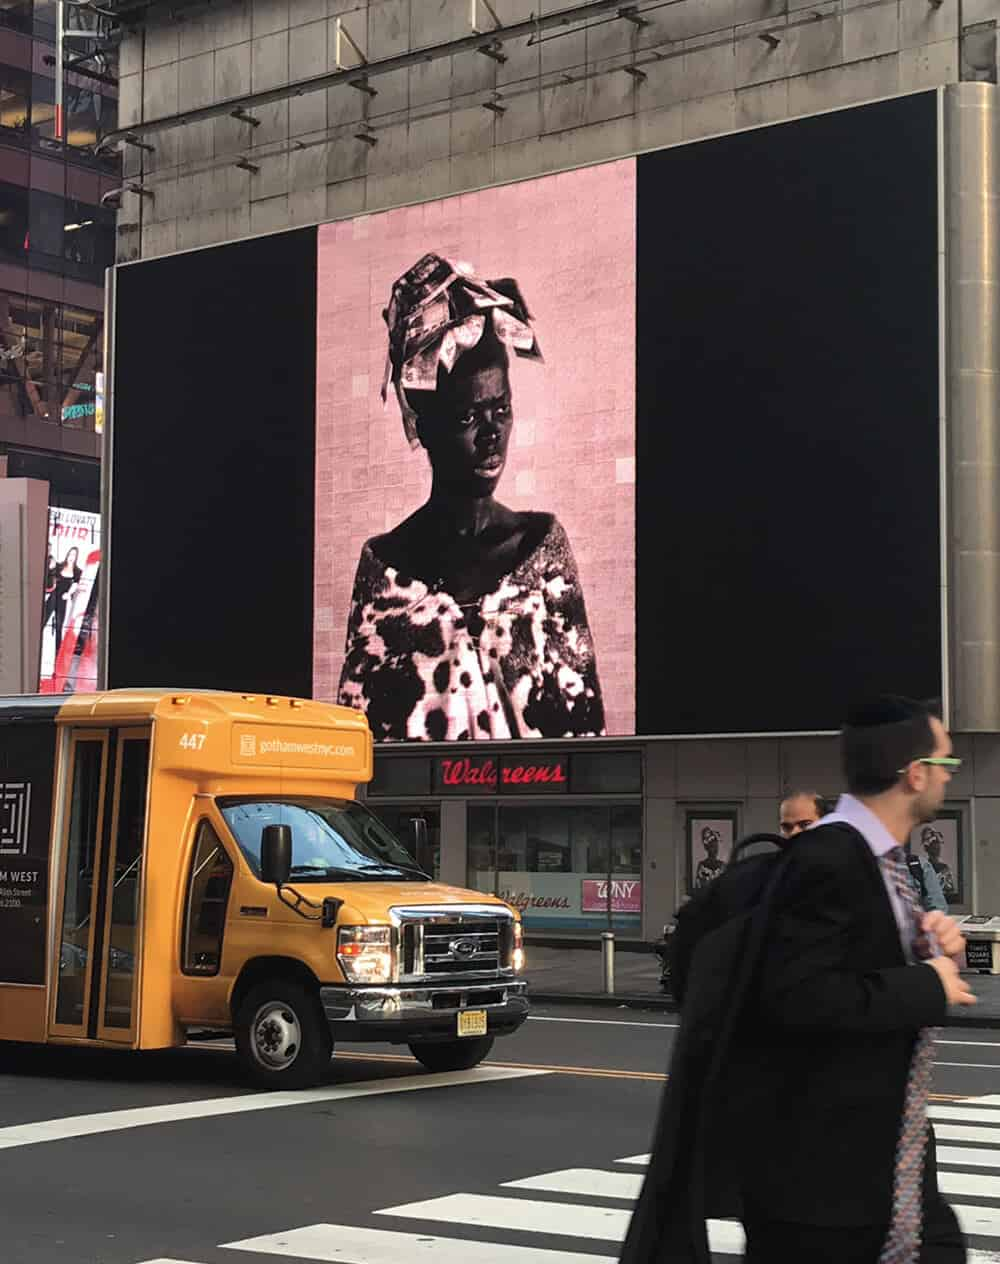 Colpo dell'installazione dell'intervento di Zanele Muholi a Time Square, New York City, come parte di Performa 17. Per gentile concessione di Performa.